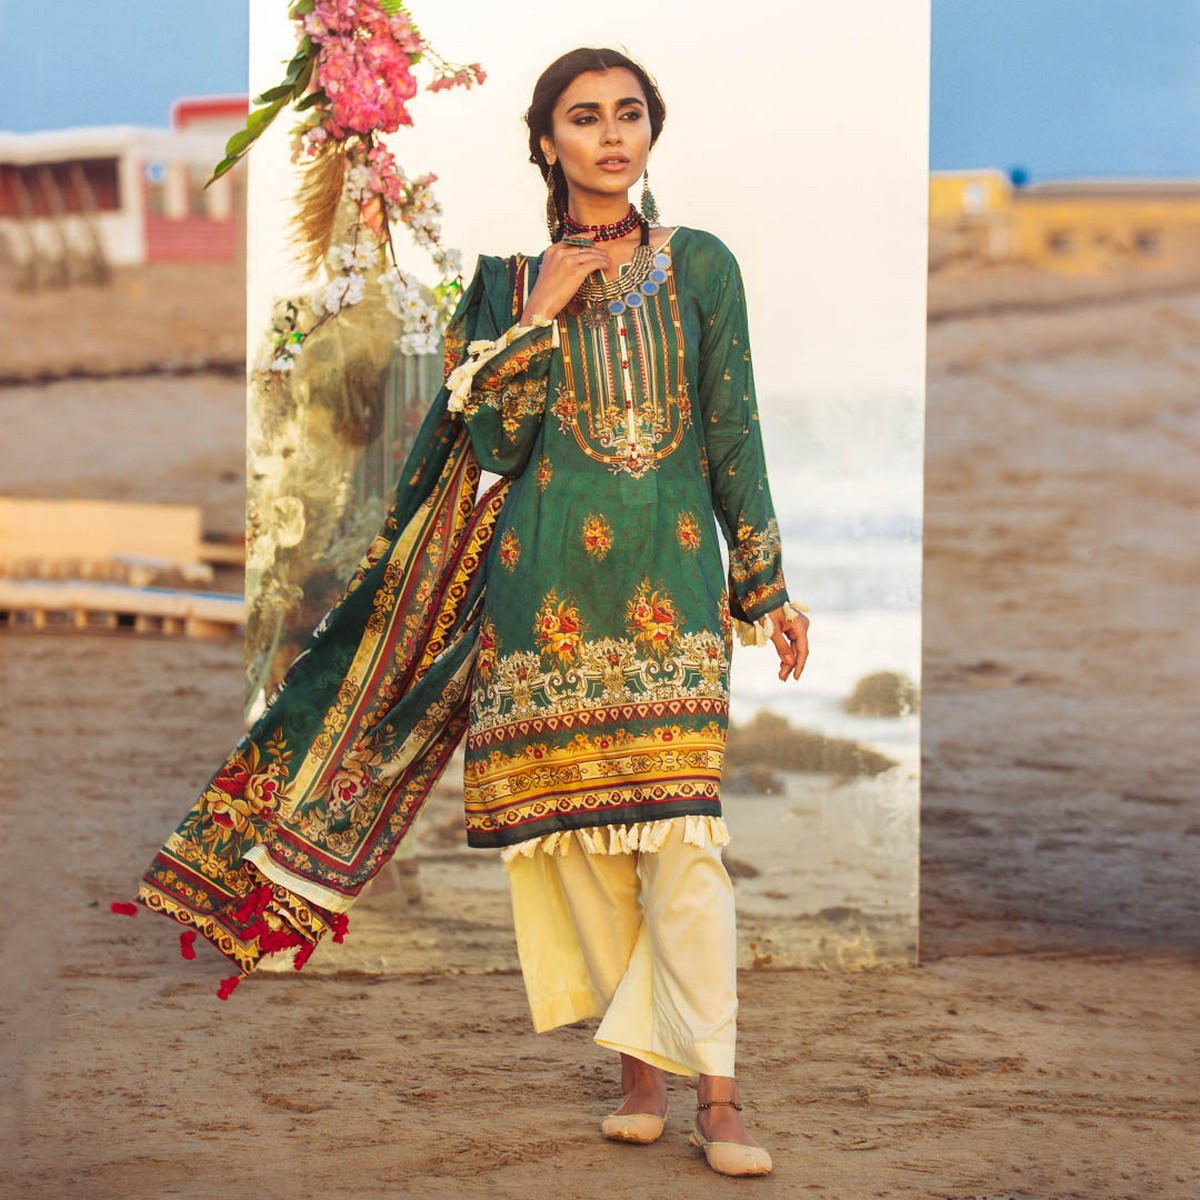 Maahru Emerald Blooms- Women's Unstitched 3PC Summer Printed Lawn suit with Dupatta